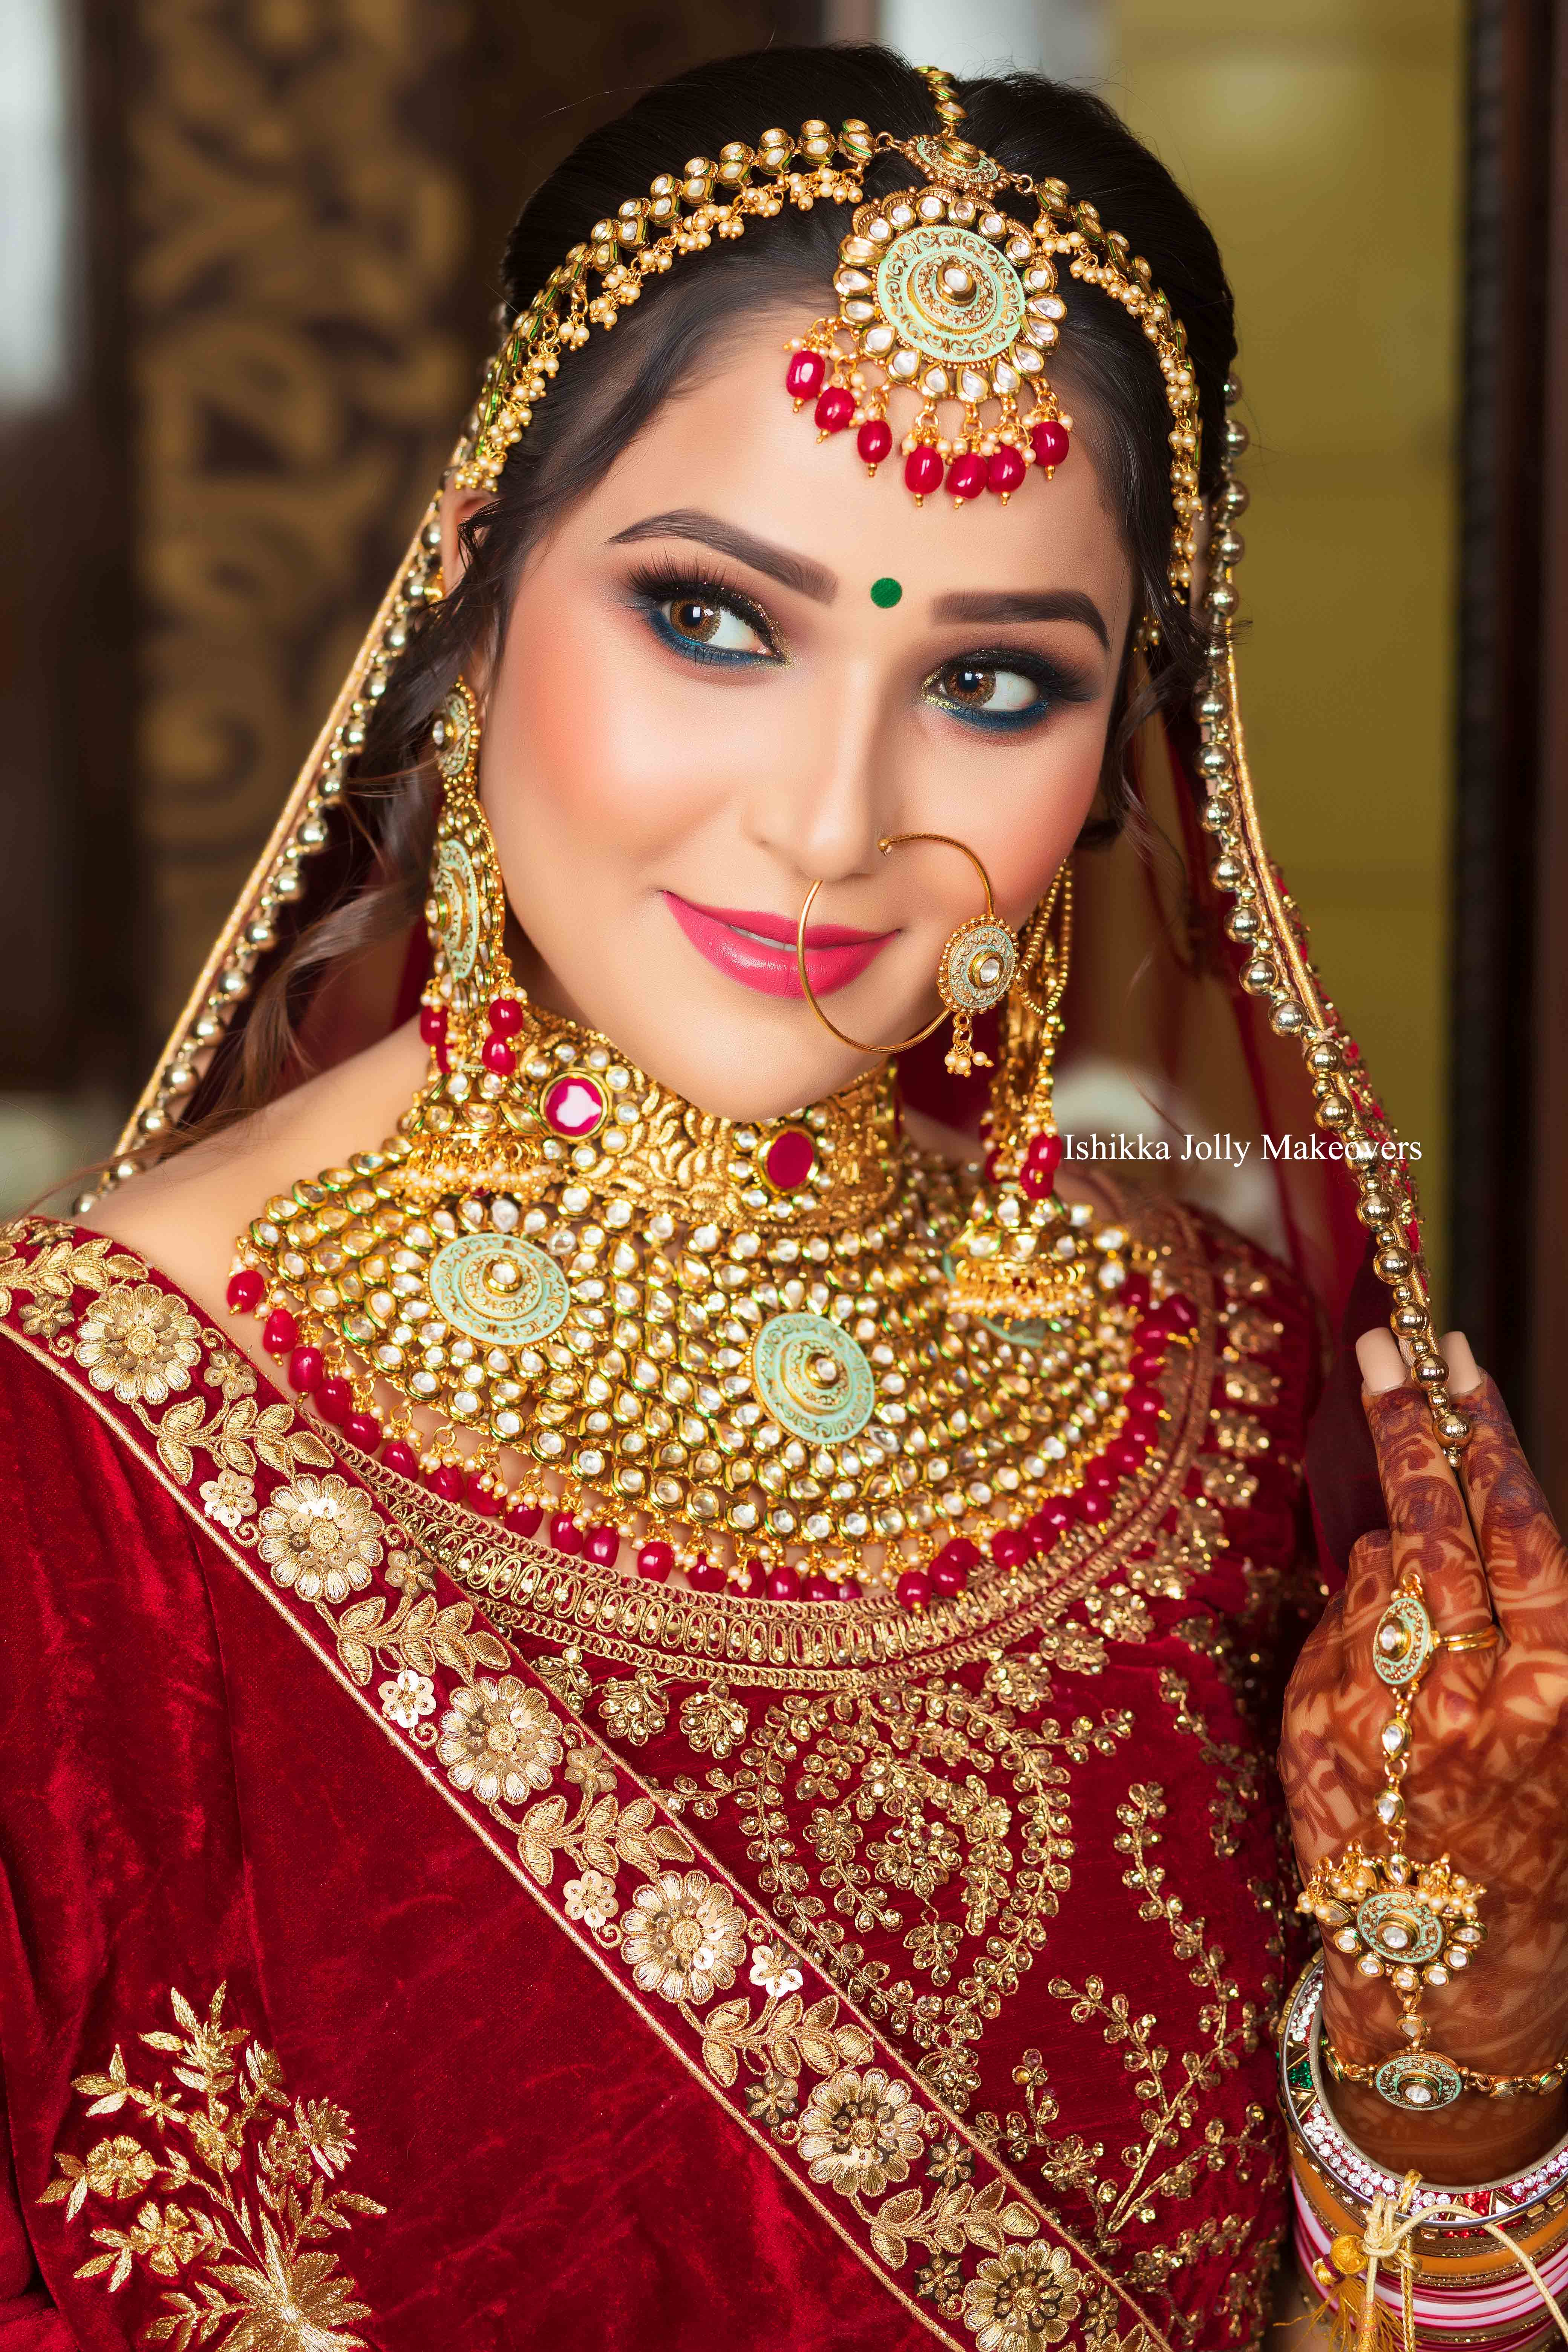 List of Bridal Makeup that is going to rule the wedding season in 2021